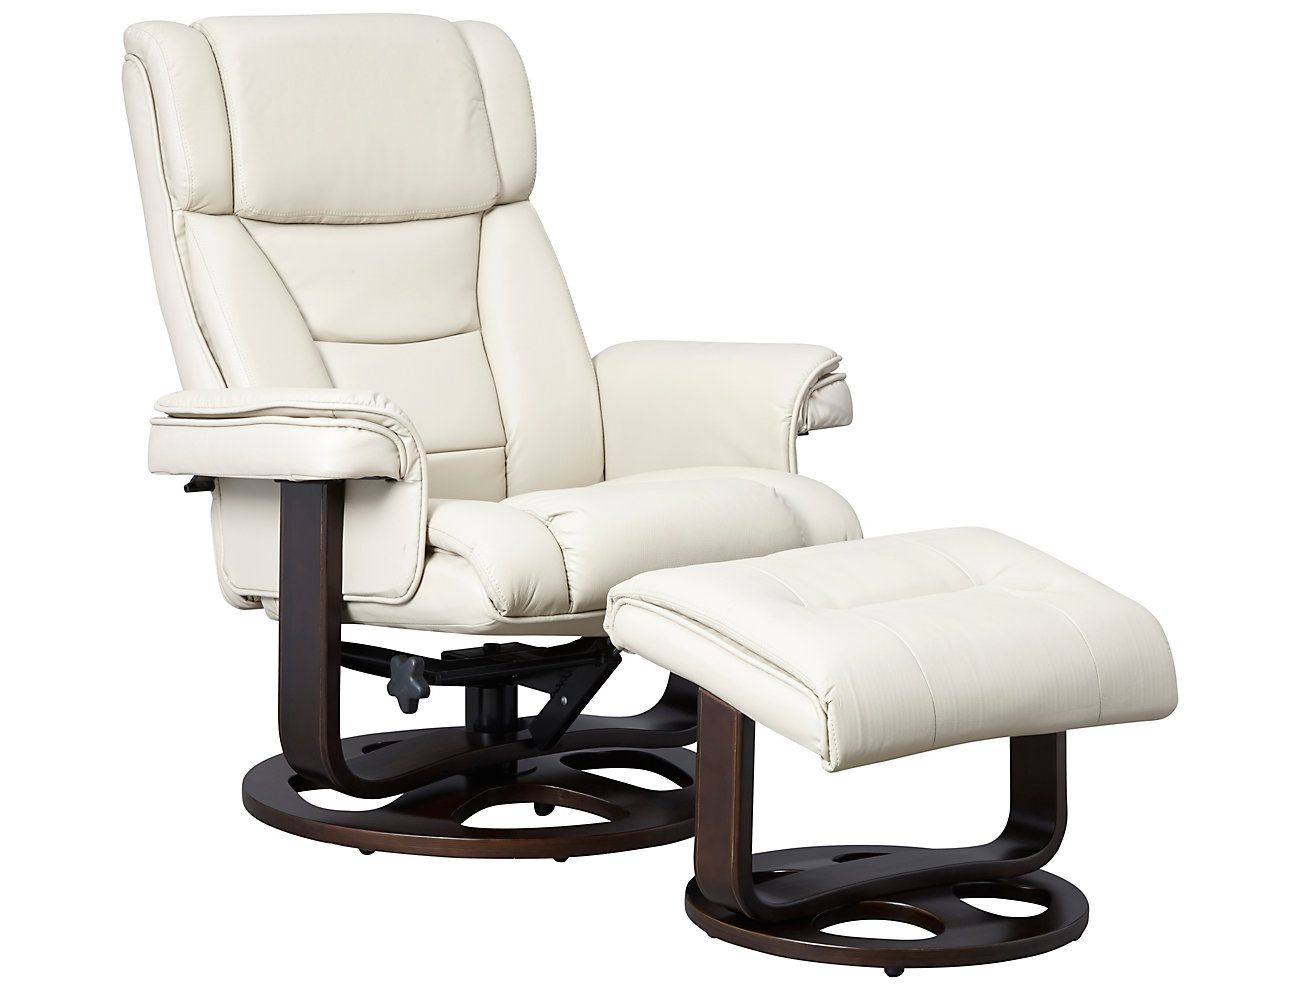 Apollo reclining chair and ottoman art van home with